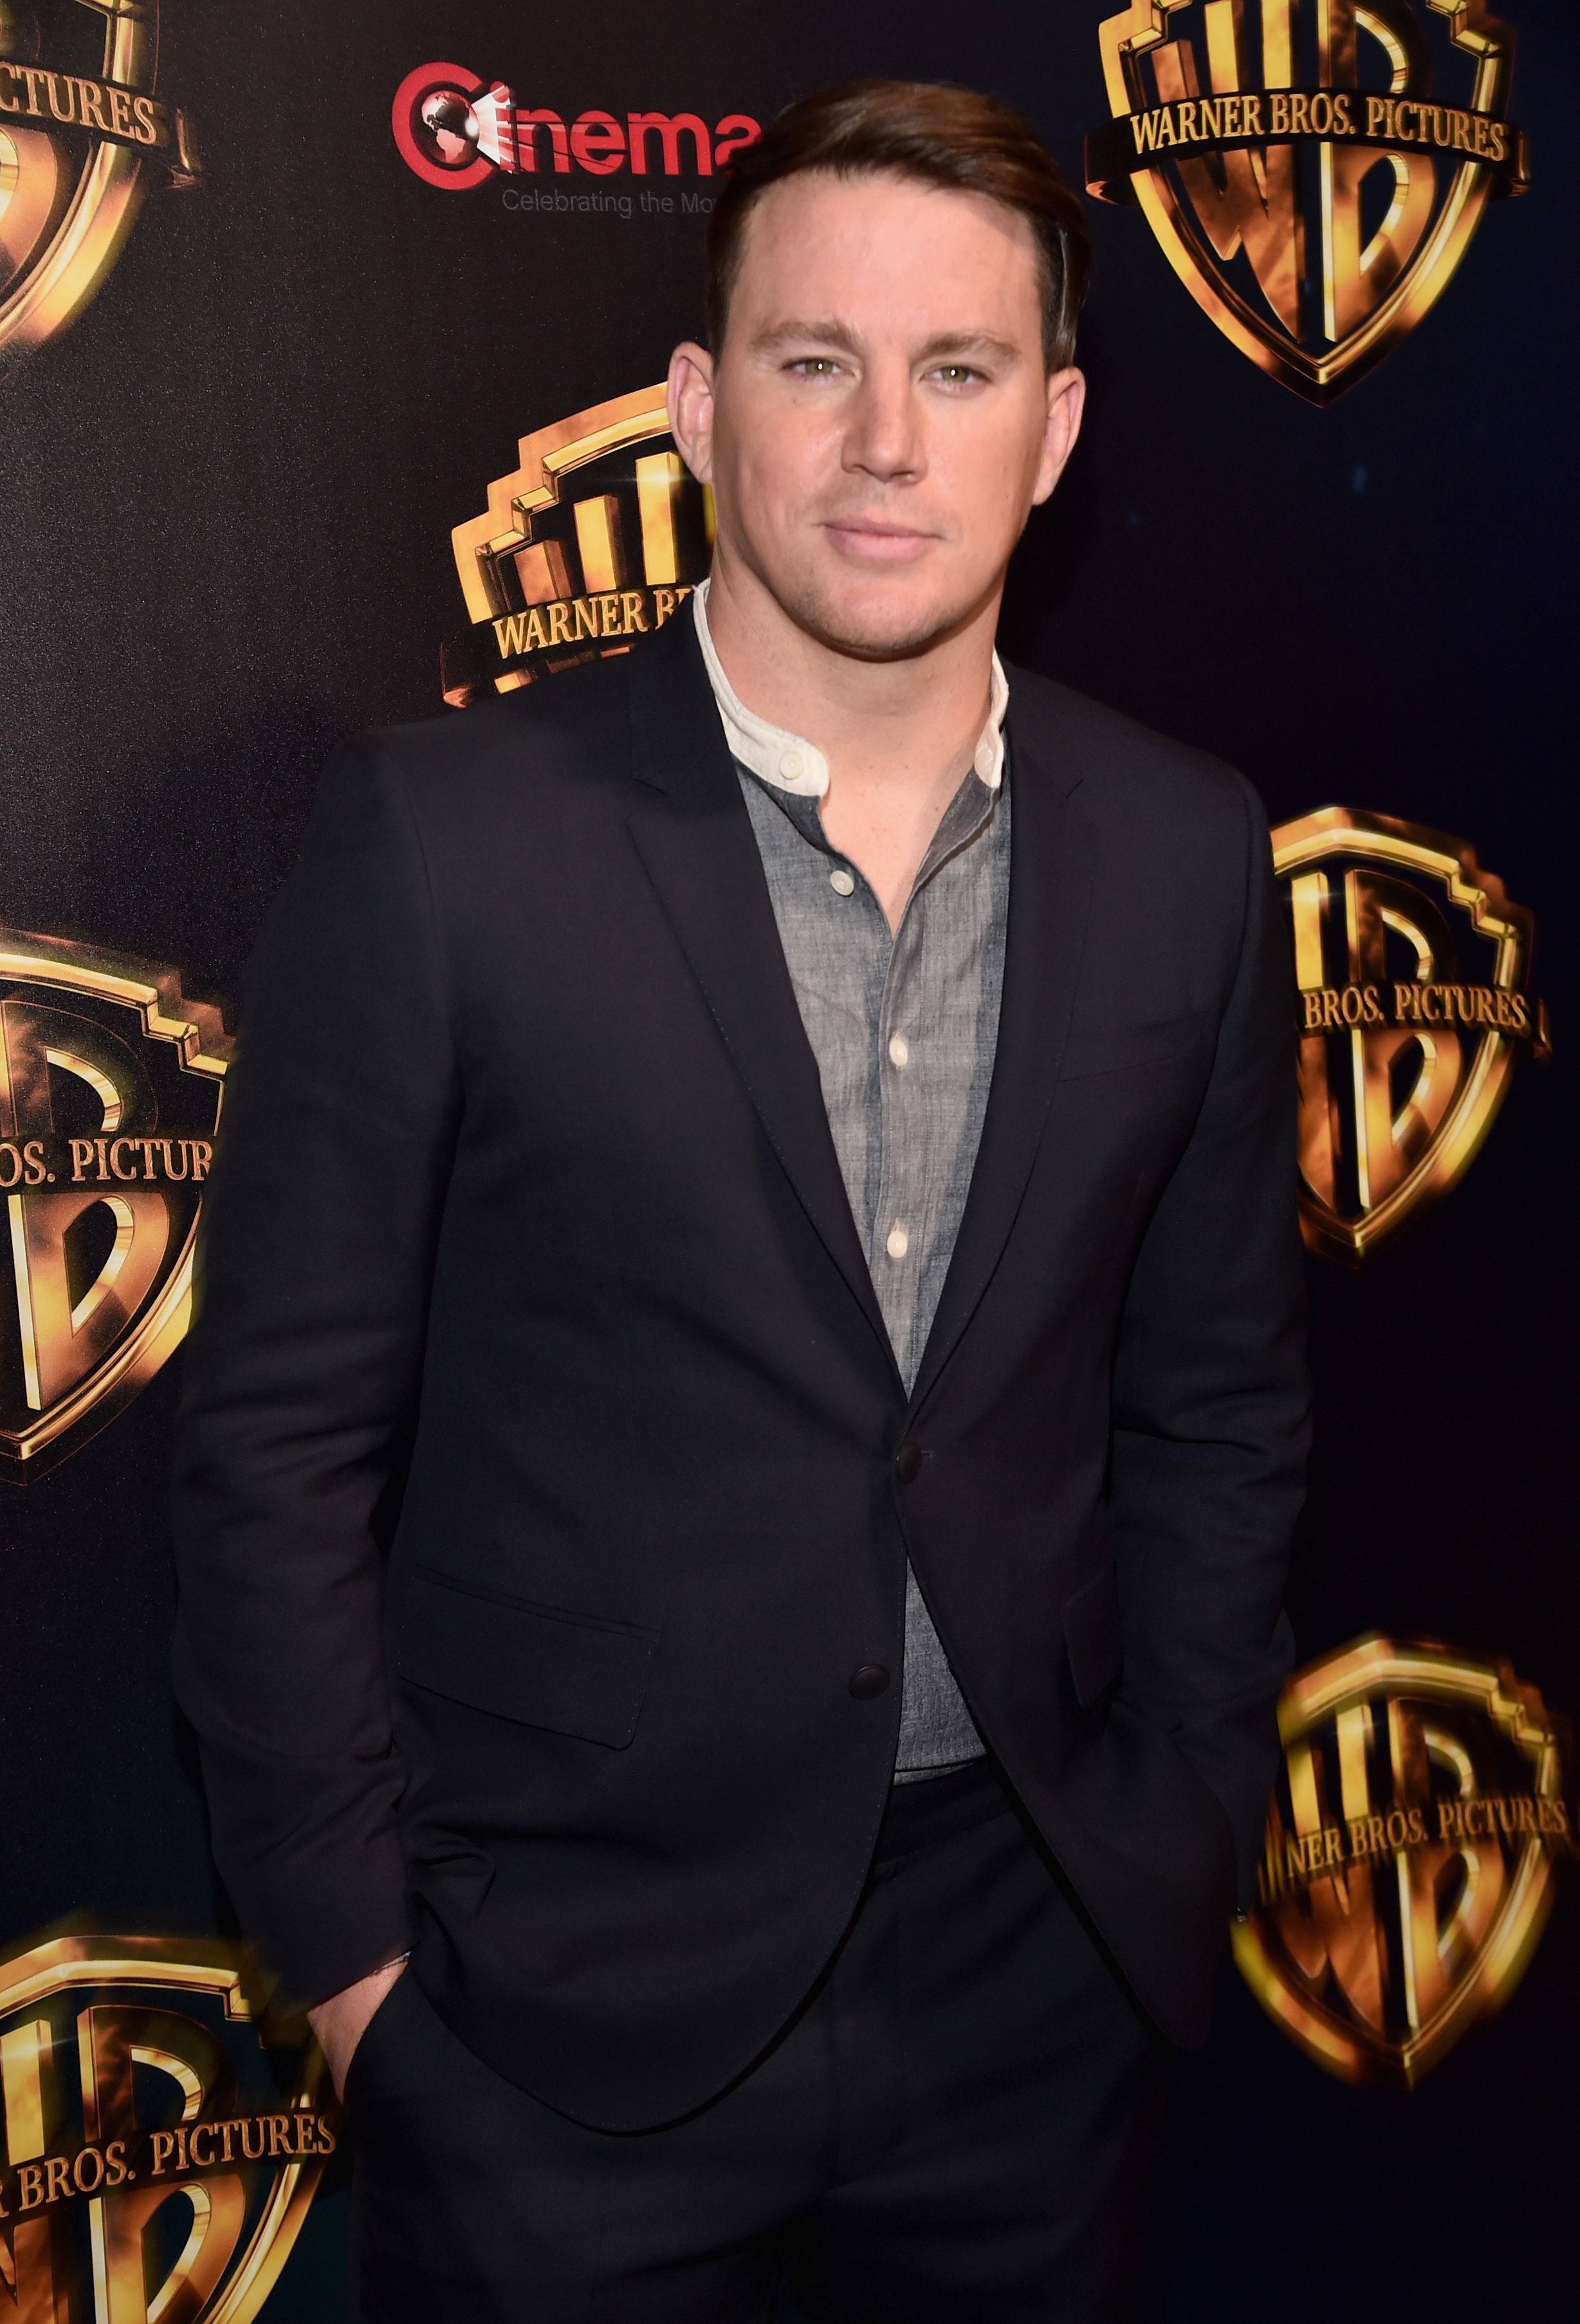 Actor Channing Tatum attends CinemaCon 2018 Warner Bros. Pictures Invites You to 'The Big Picture,' an Exclusive Presentation of our Upcoming Slate at The Colosseum at Caesars Palace during CinemaCon, the official convention of the National Association of Theatre Owners, on April 24, 2018 in Las Vegas, Nevada.